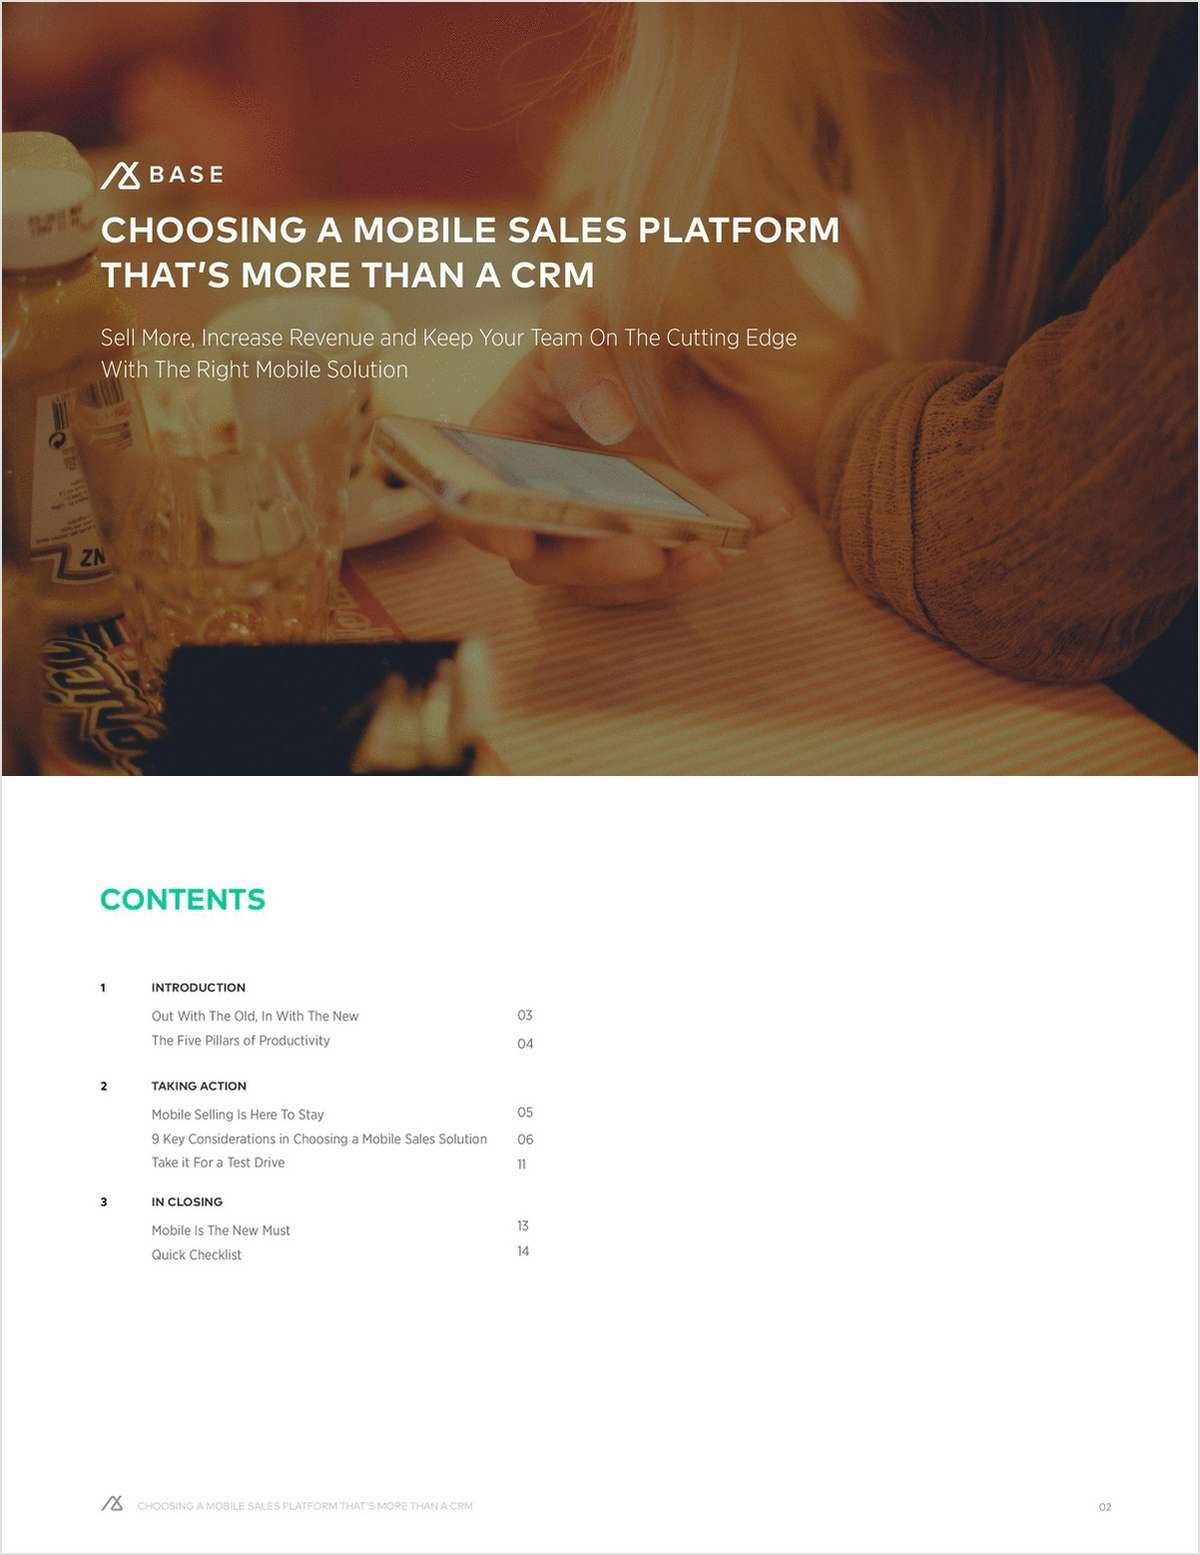 Choosing a Mobile Sales Platform That's More Than a CRM